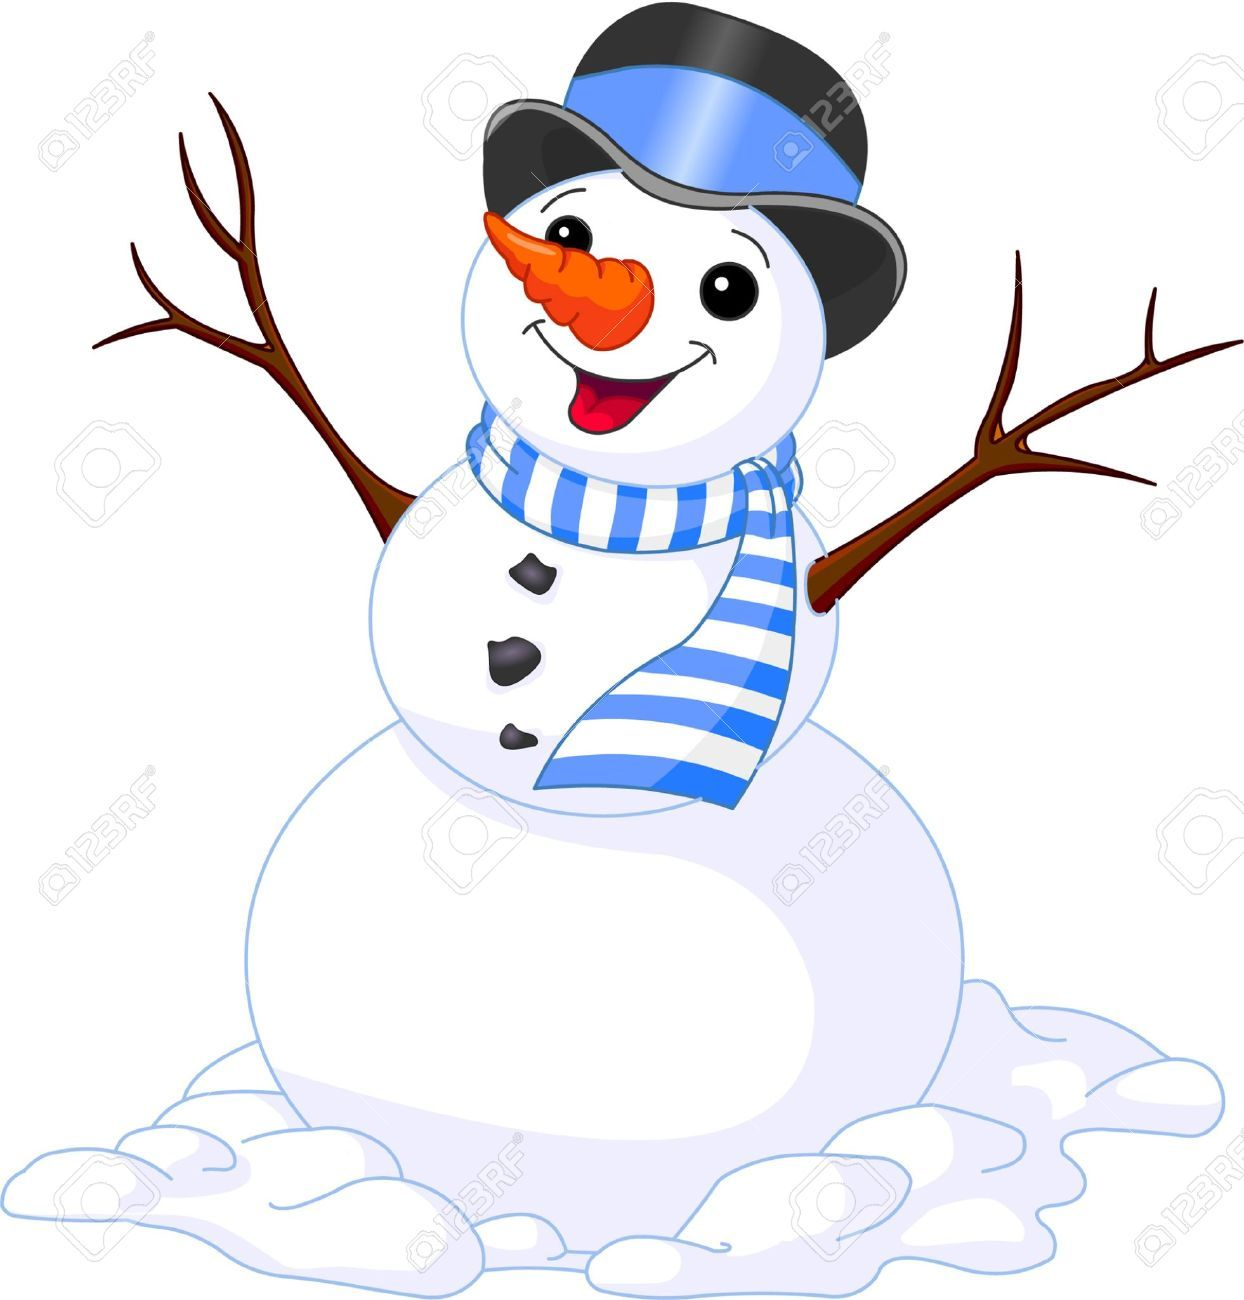 Snowman Nose Stock Illustrations Cliparts And Royalty Free Snowman Nose Vectors Snowman Images Christmas Illustration Snowman